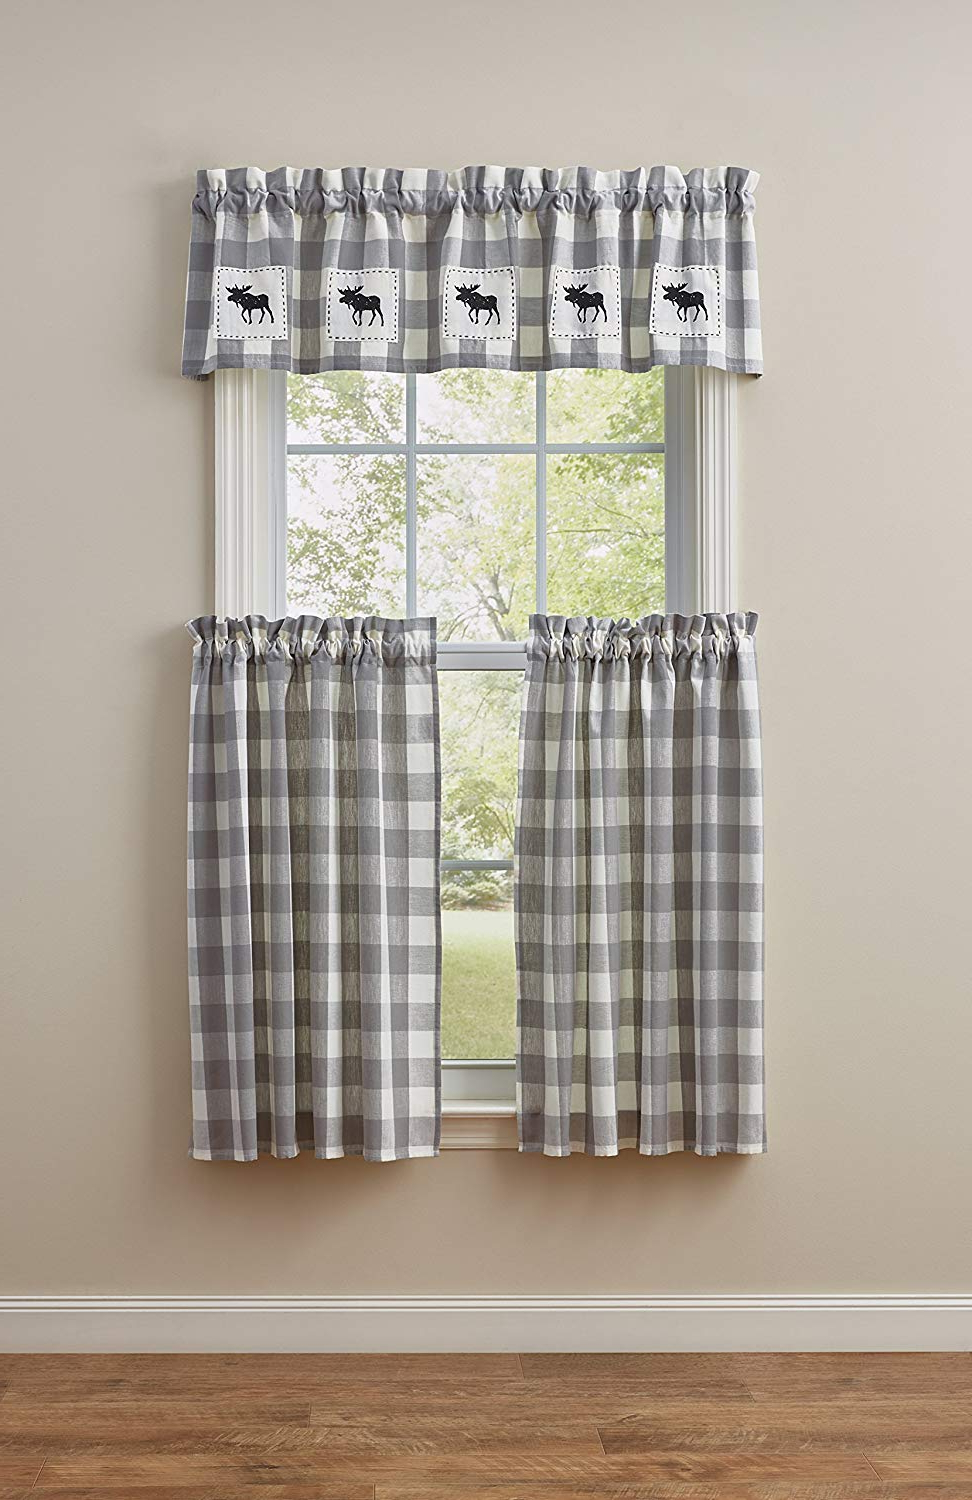 Wicklow Gray & White Check Tier Curtain Pair, 72W X 36L, Dove For Most Up To Date Dove Gray Curtain Tier Pairs (View 20 of 20)